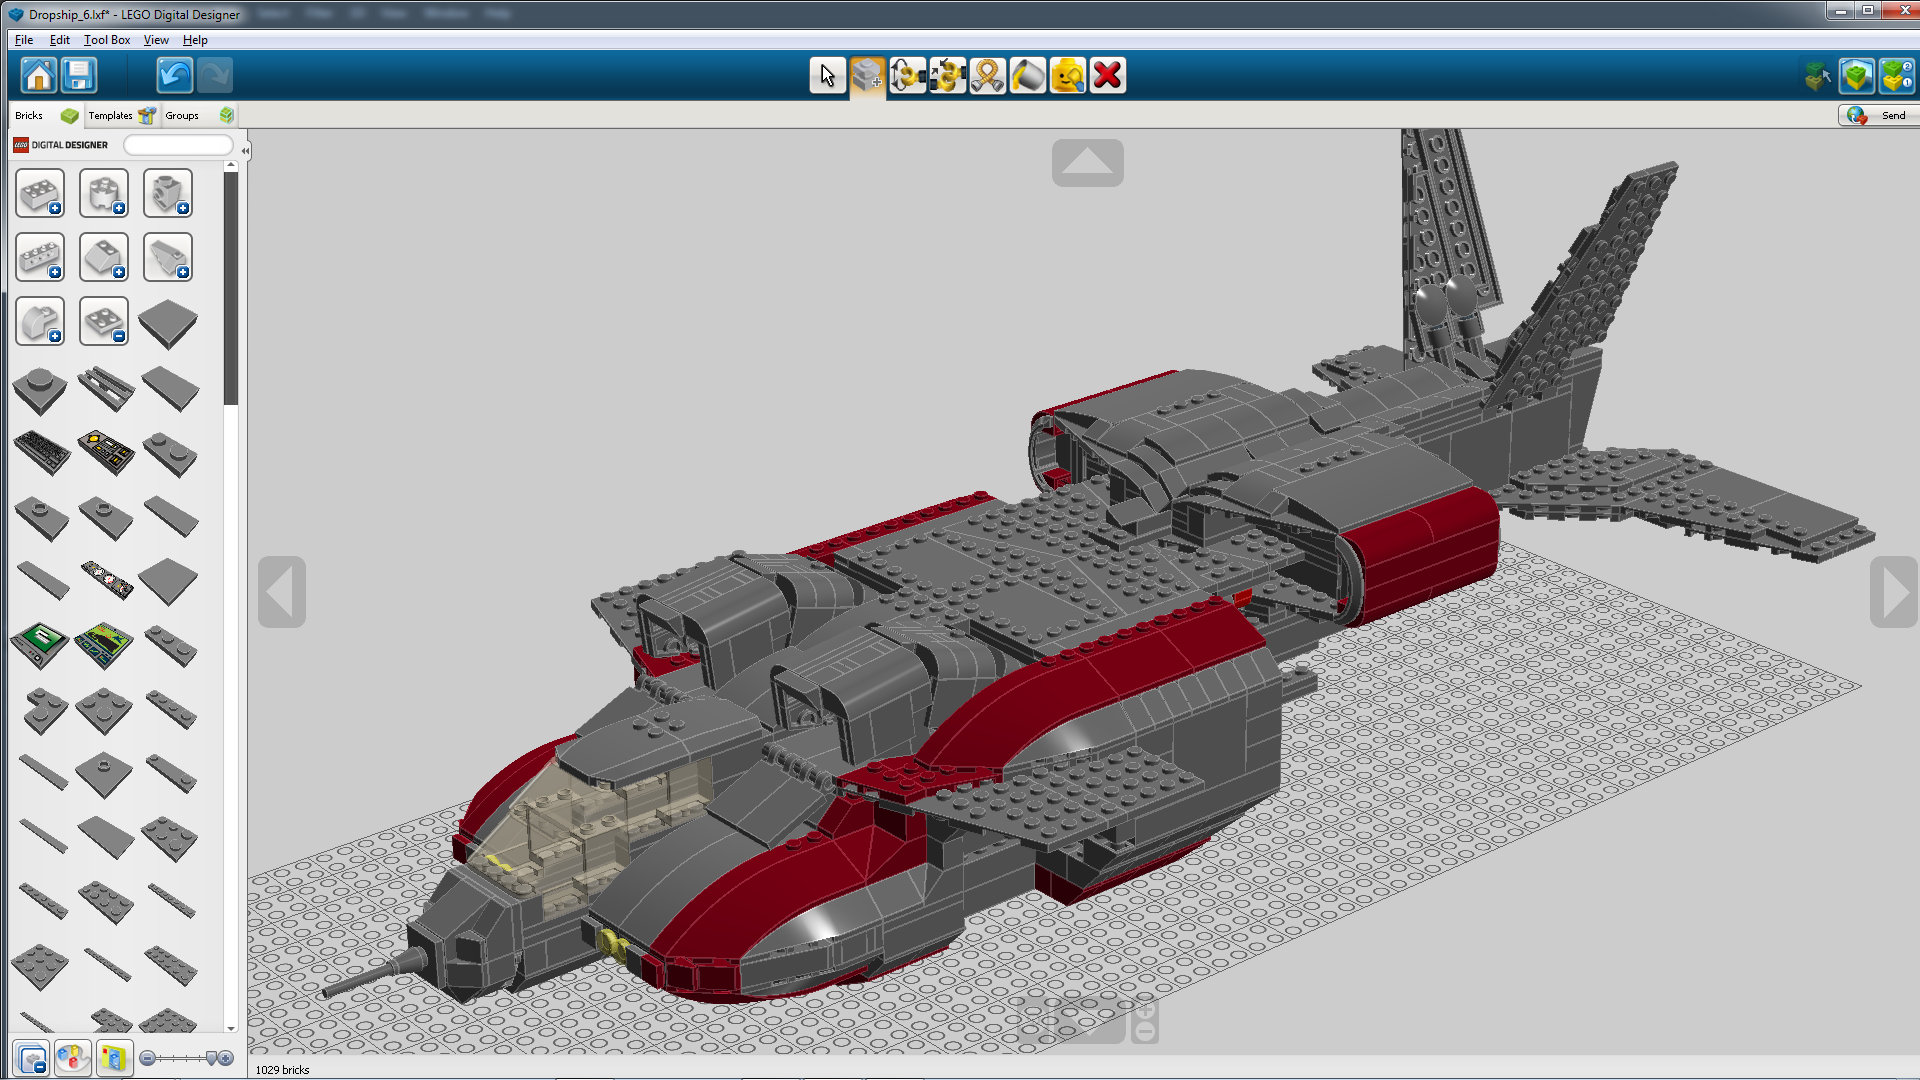 Screen shot of Lego Dropship built in Lego Digital Designer